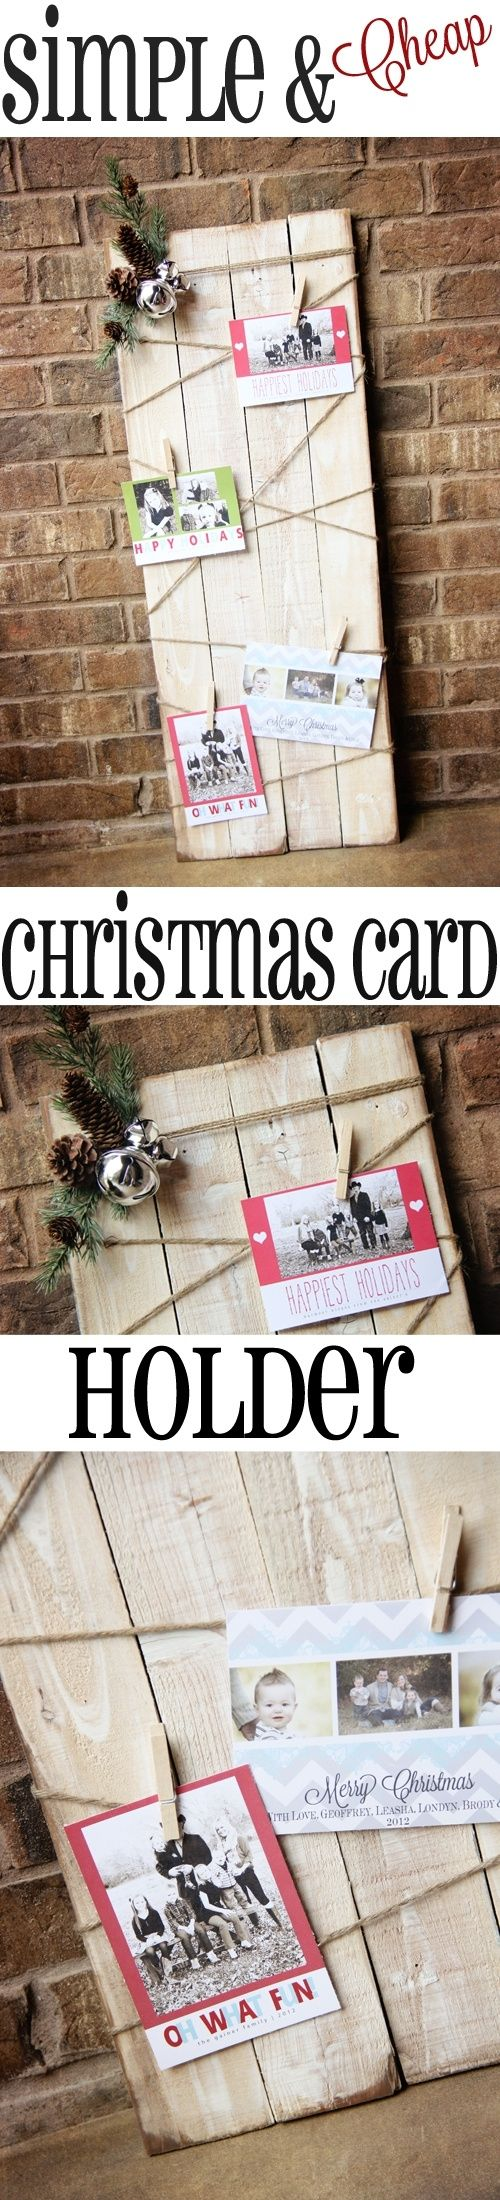 diy wood pallet christmas card display